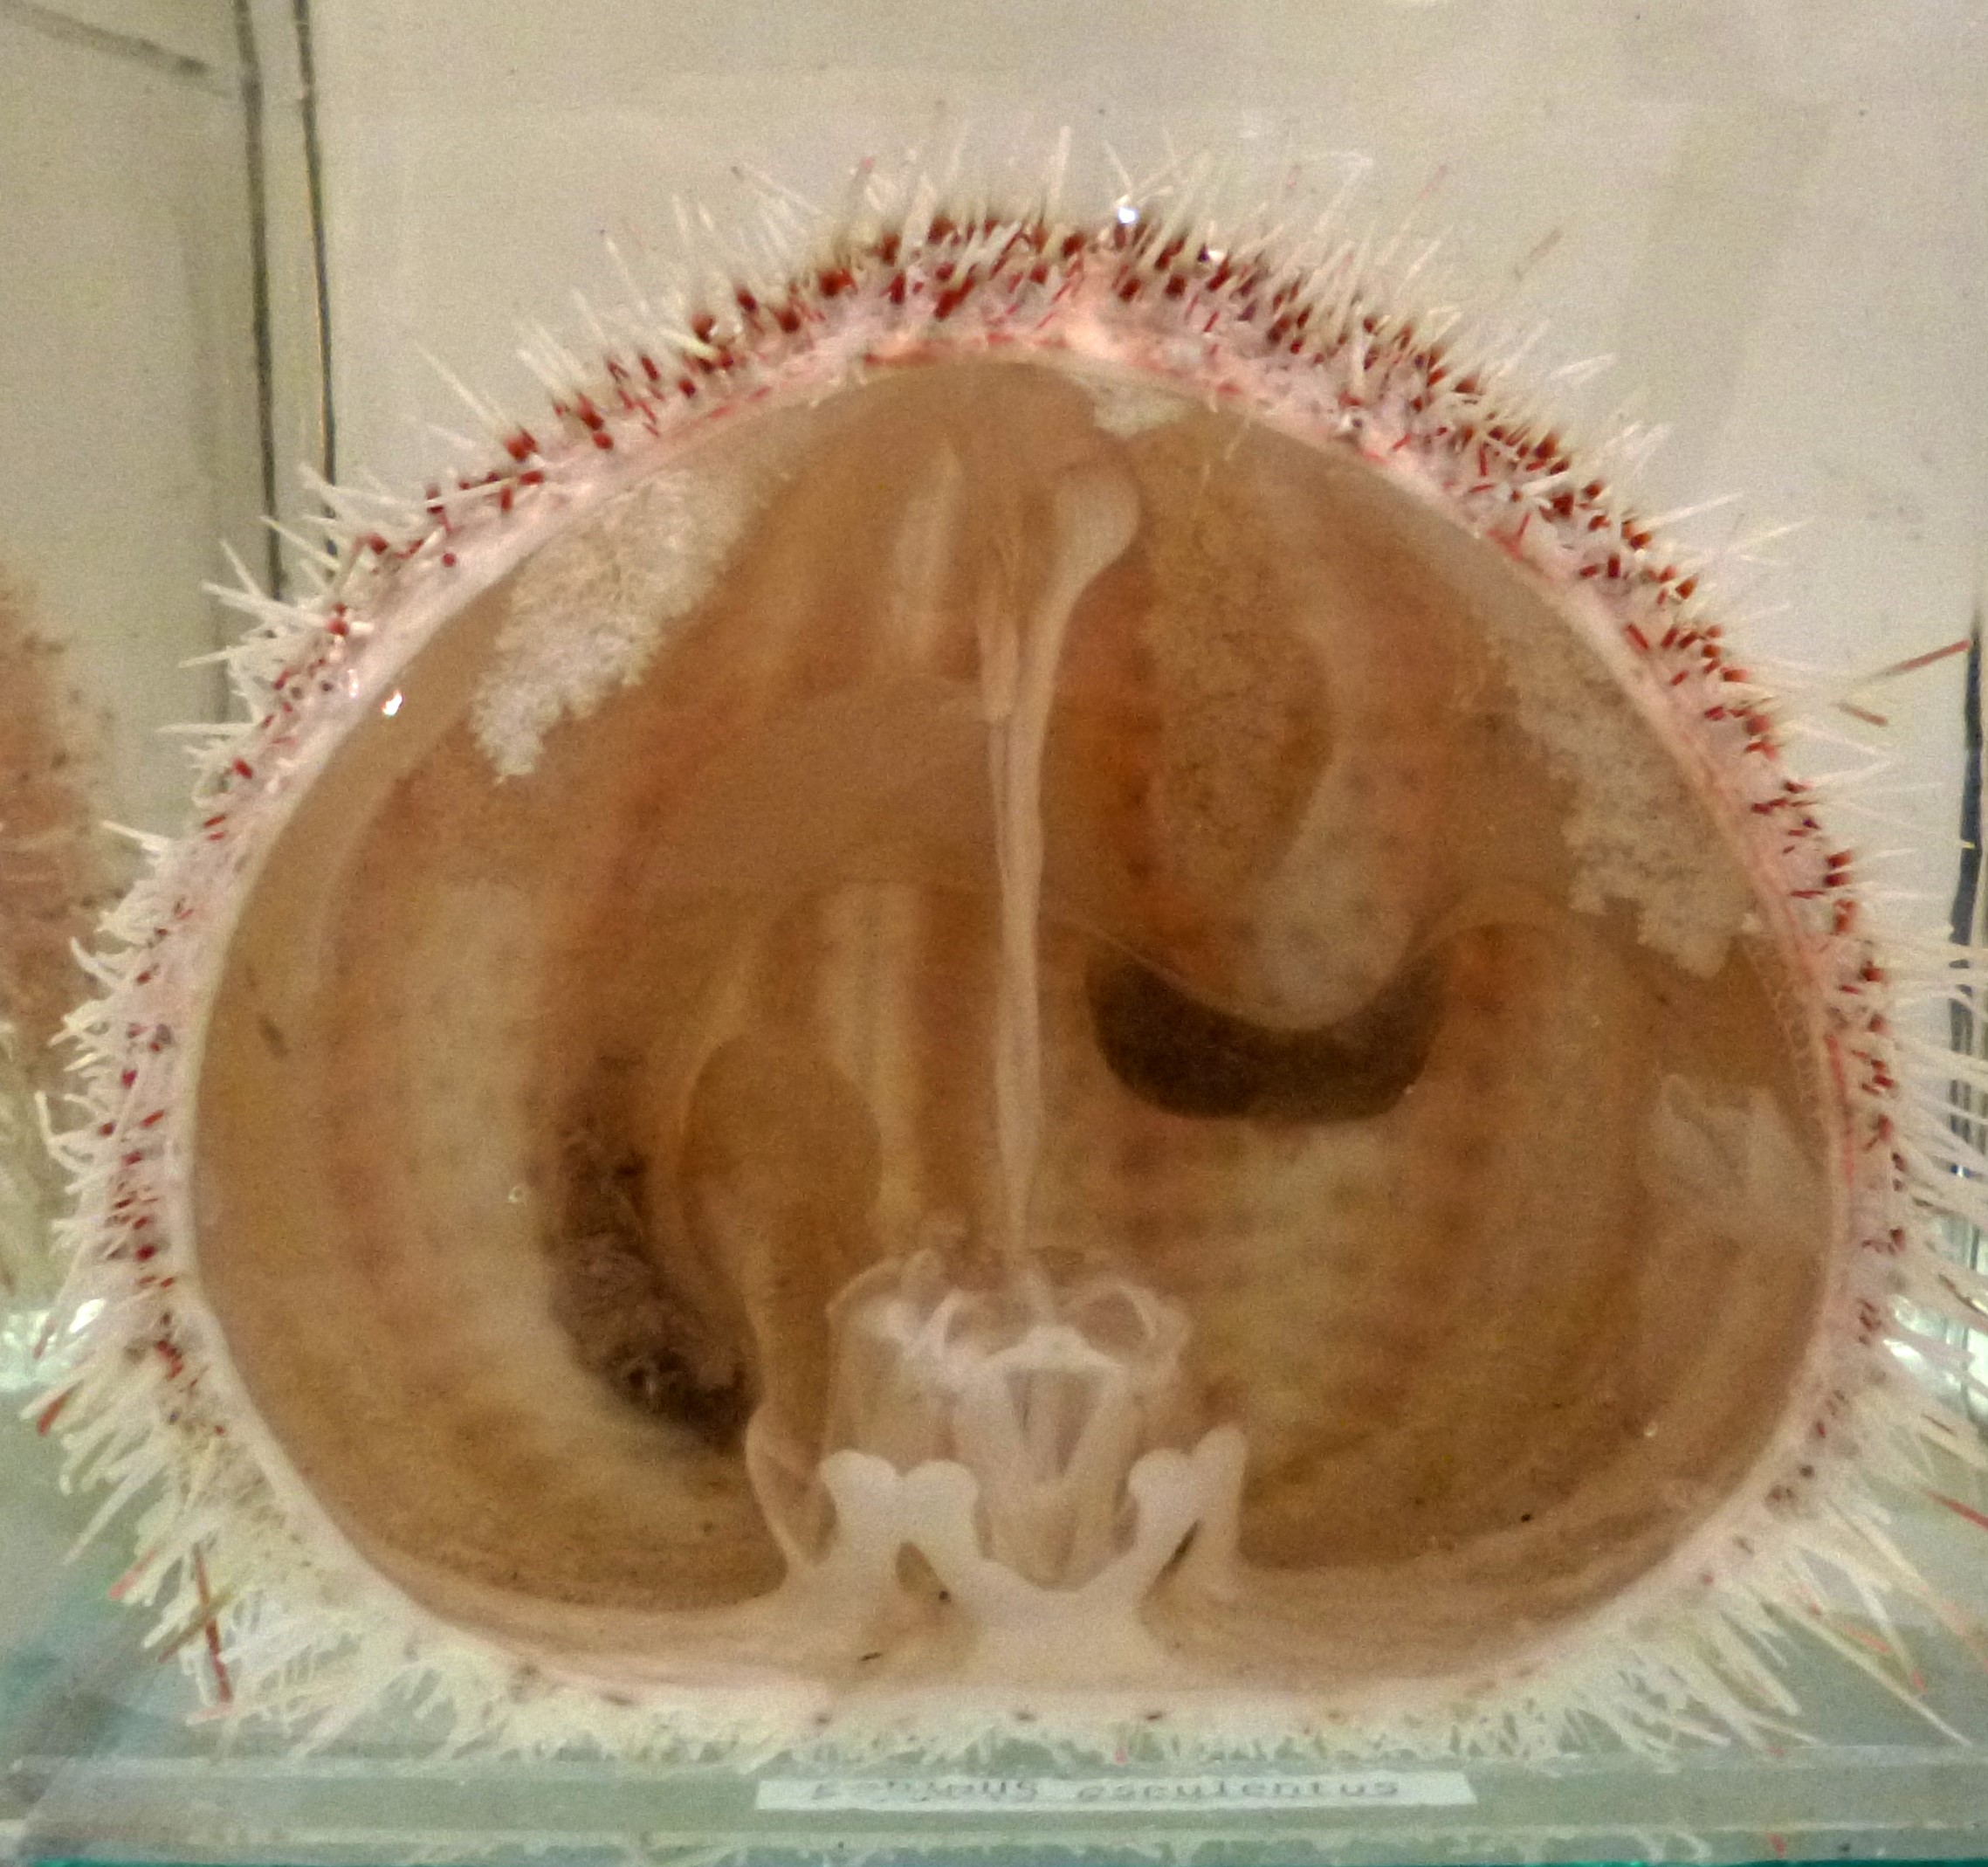 Sectioned sea urchin showing the feeding apparatus inside